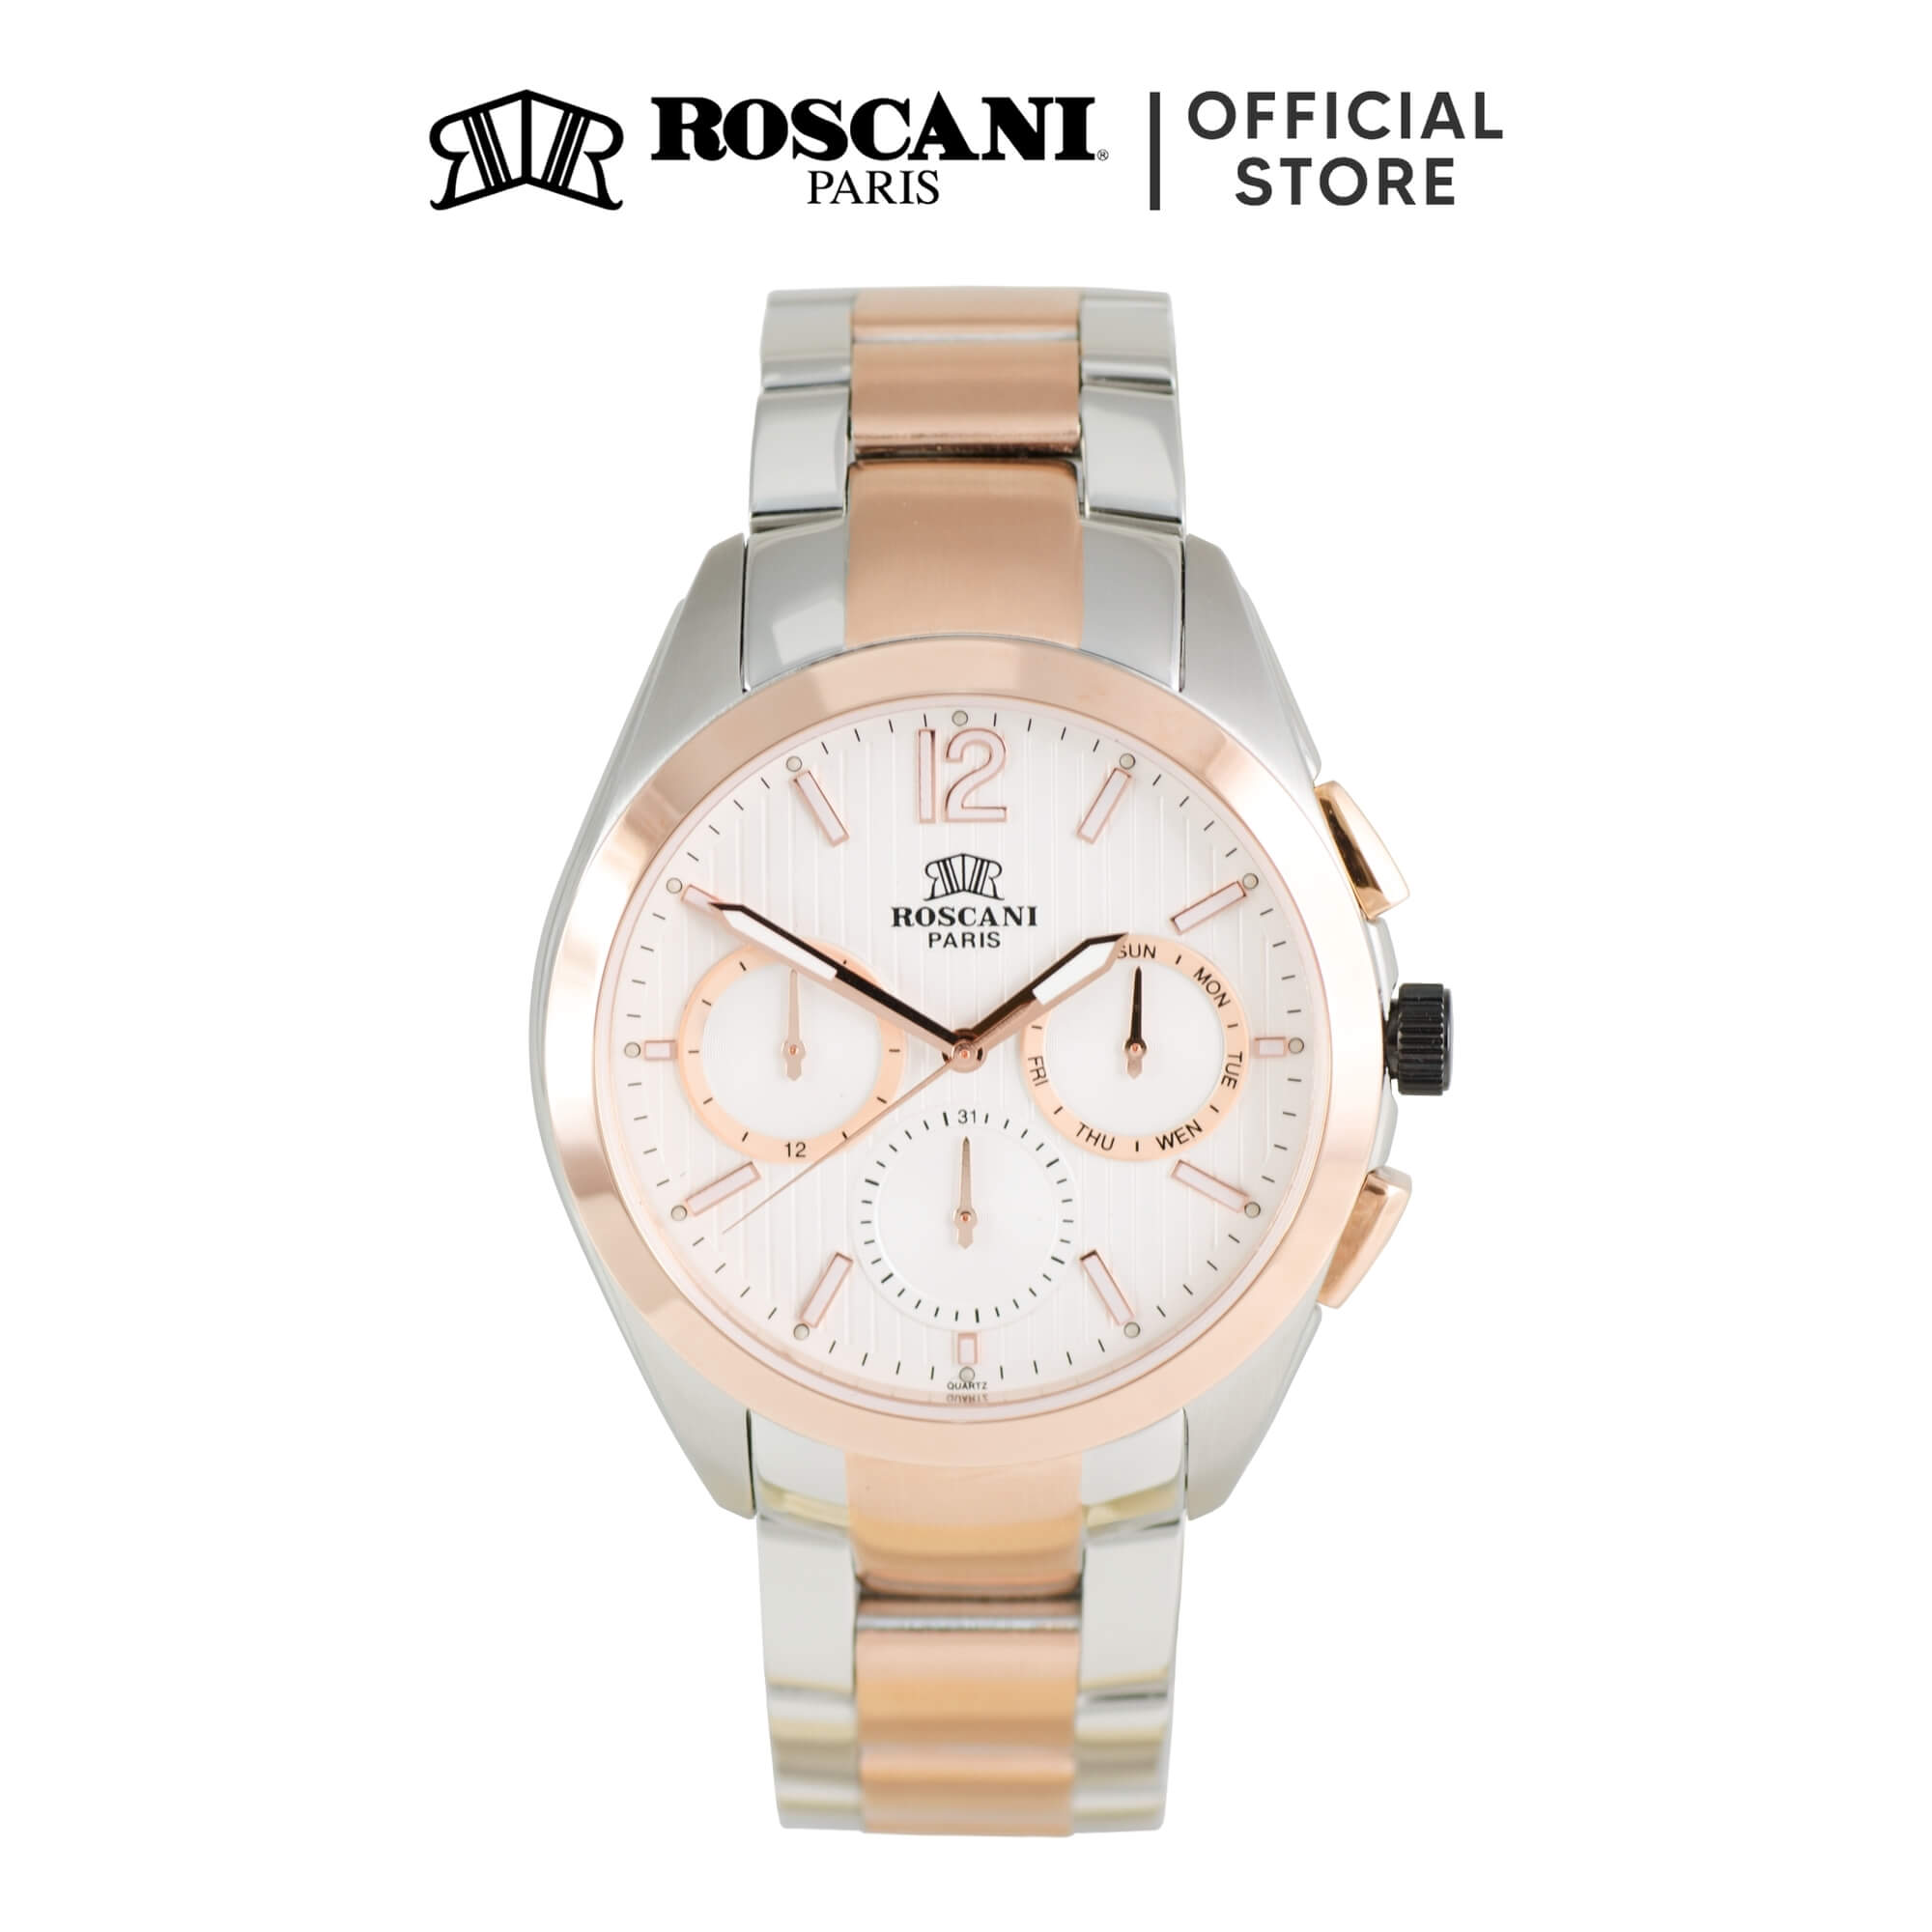 Roscani Prince 974 (Multifunction + WR 5ATM) Bracelet Men Watch